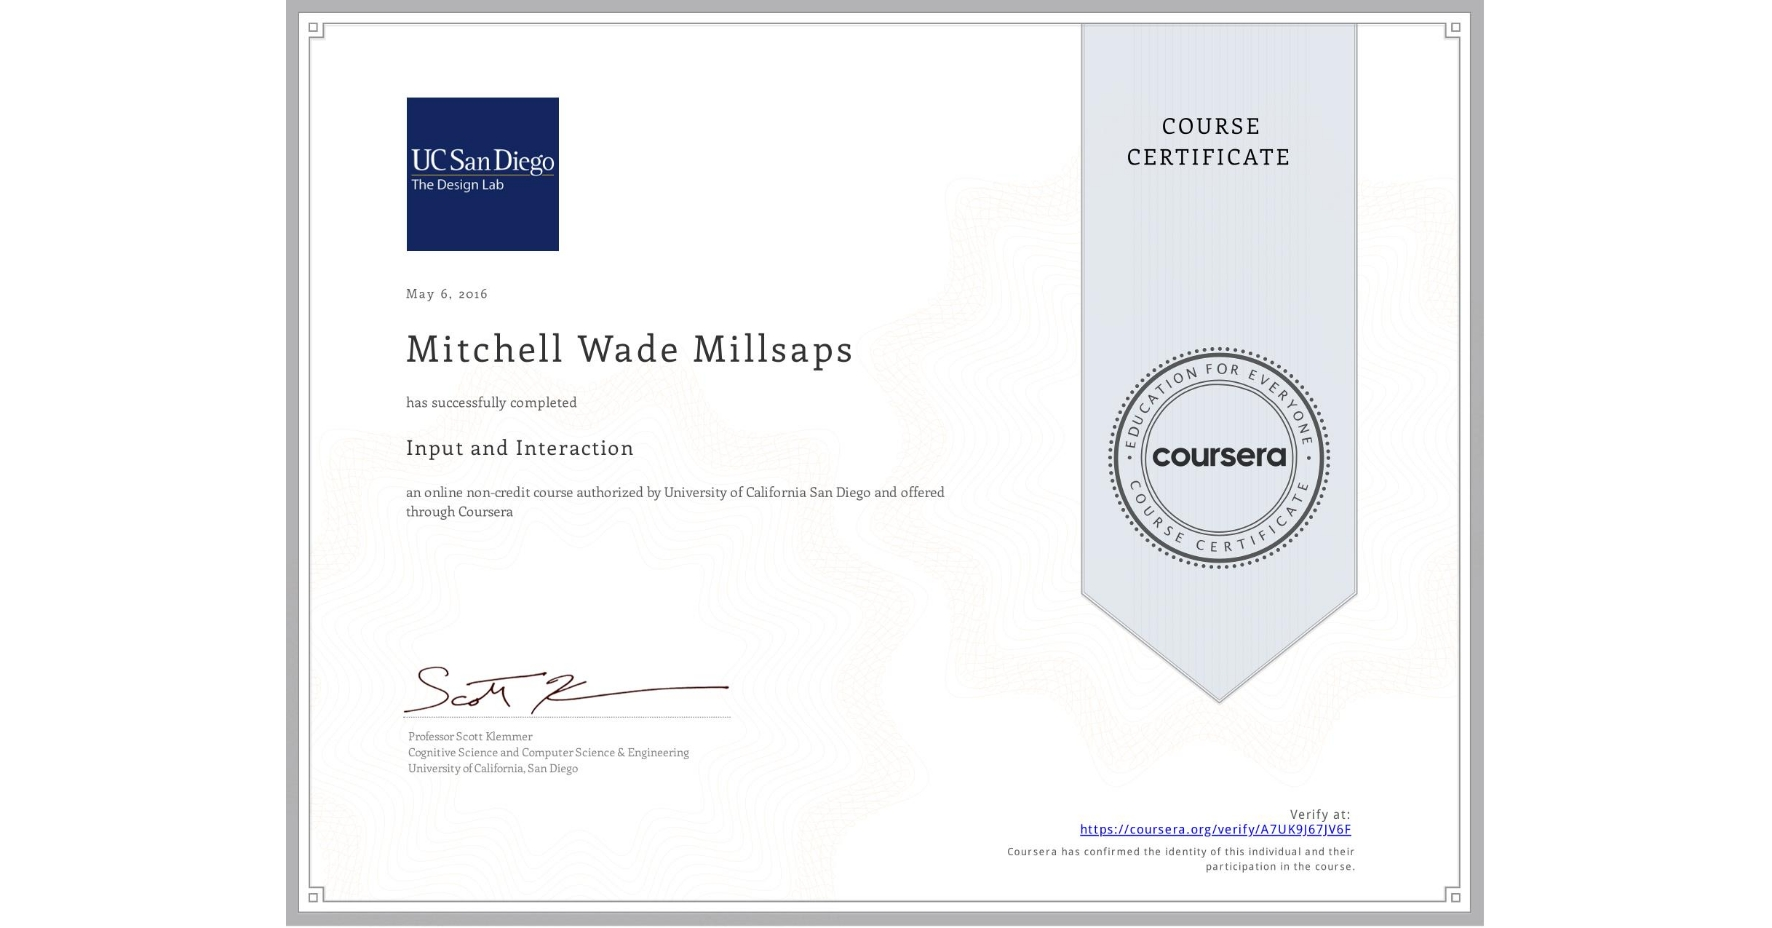 View certificate for Mitchell Wade Millsaps, Input and Interaction, an online non-credit course authorized by University of California San Diego and offered through Coursera